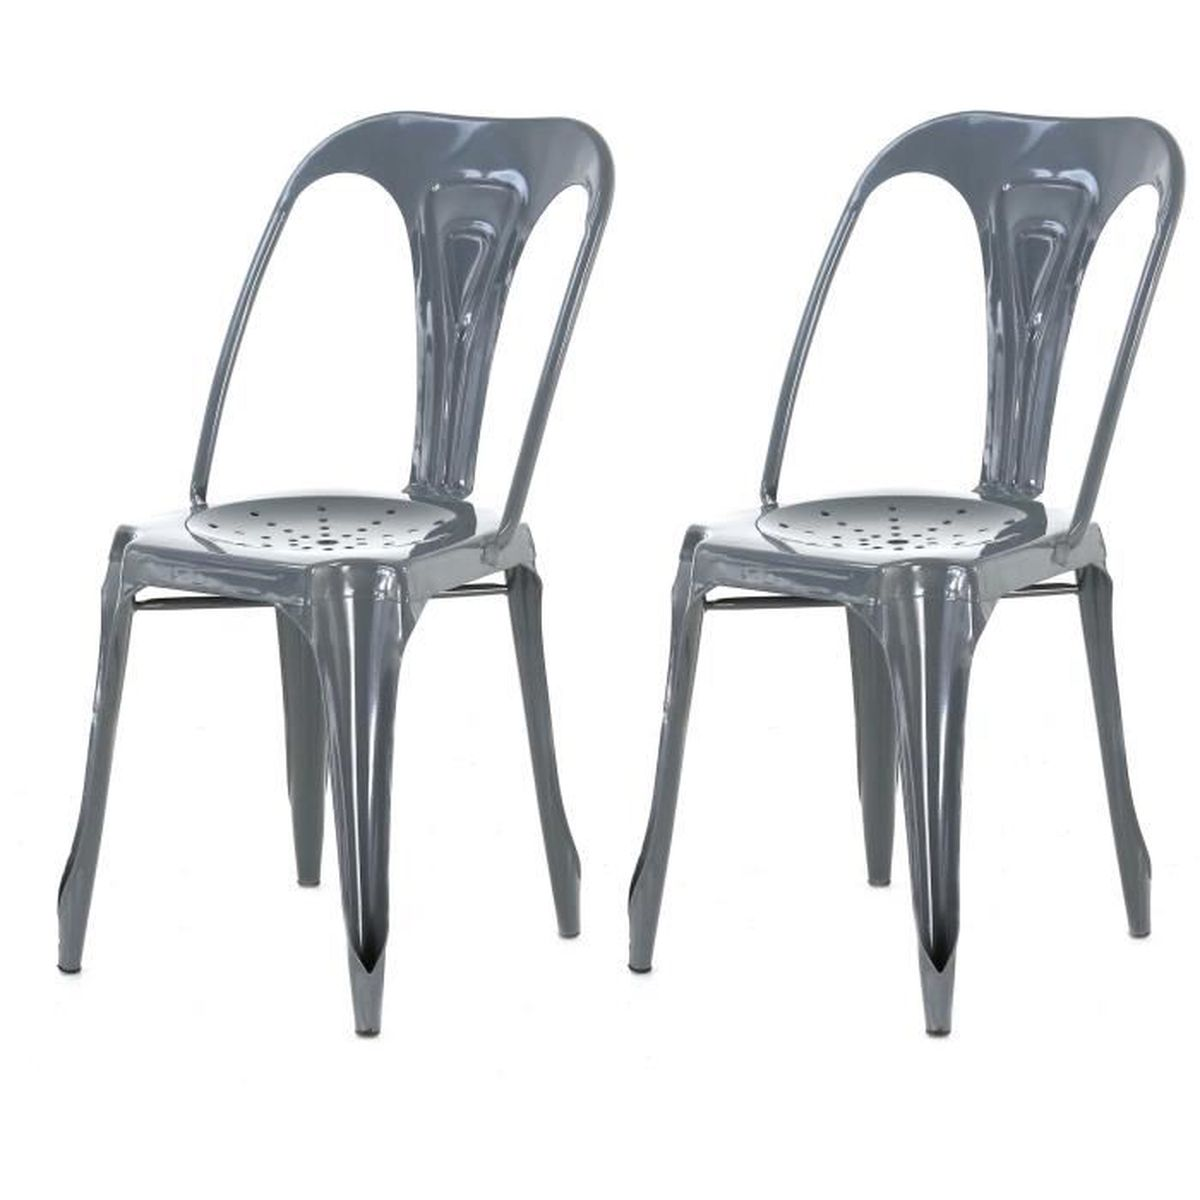 lot de 2 chaises industrielles grise m tal kirk achat vente chaise cdiscount. Black Bedroom Furniture Sets. Home Design Ideas